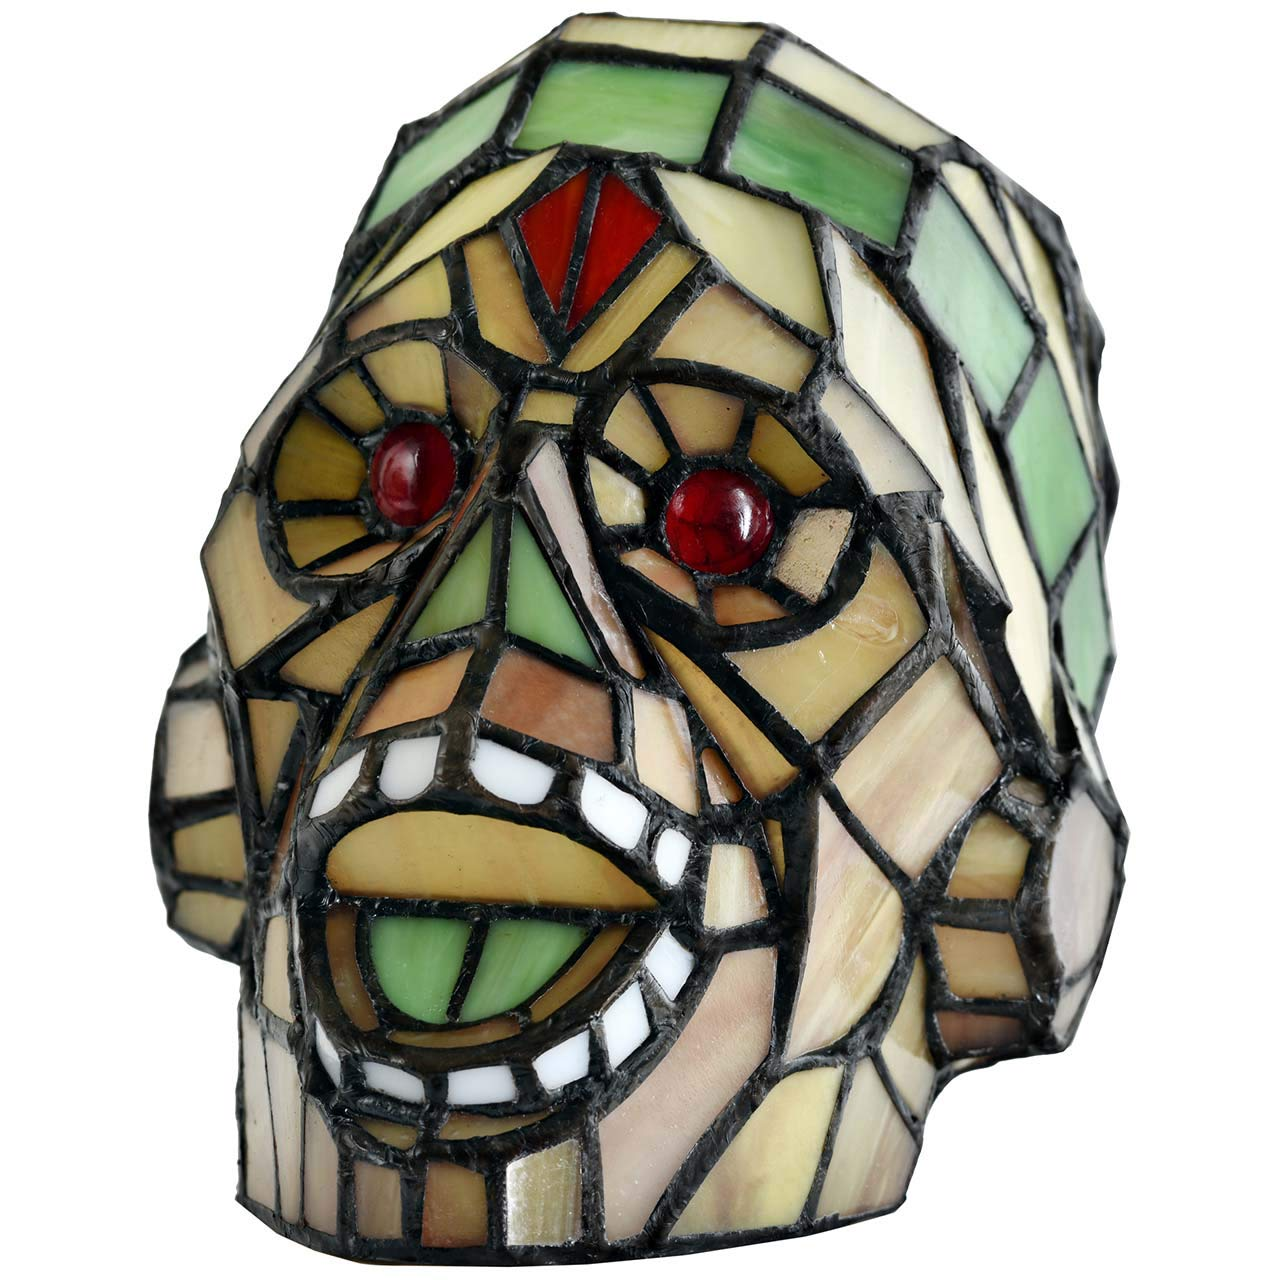 Bieye L10701 Laughing Skull Tiffany Style Stained Glass Accent Table Lamp Night Light for Bedside Living Room Bedroom, 9 Wide x 7 High Green Orange